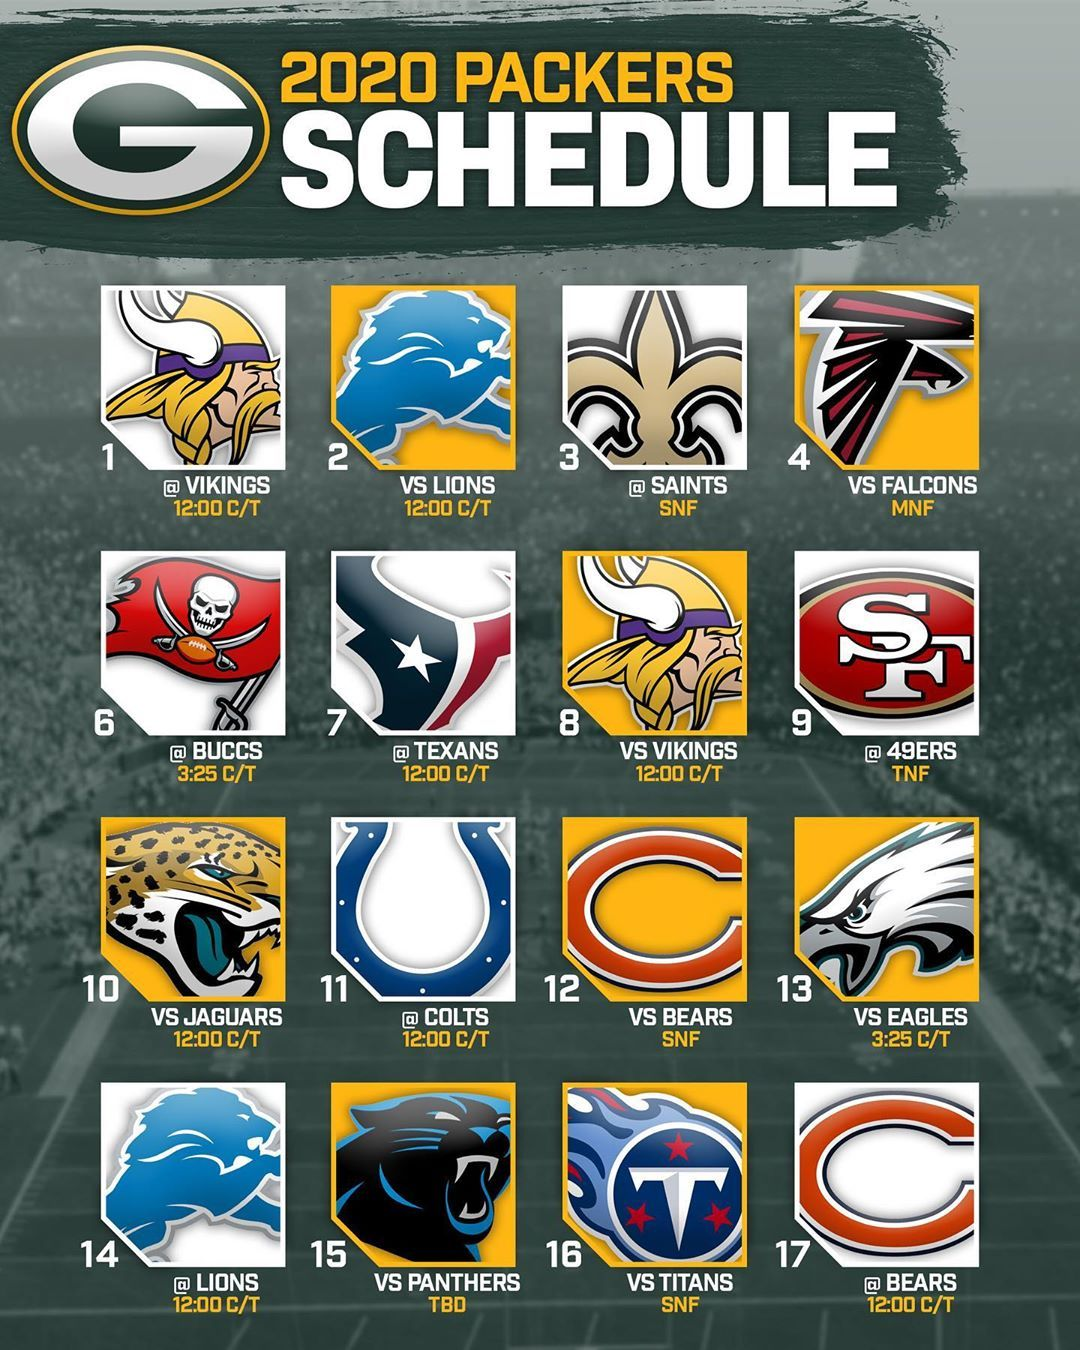 Green Bay Packers Coverage On Instagram The Official 2020 Schedule Has Been Released Early Record Predictions In 2020 Packers Green Bay Packers Packers Schedule